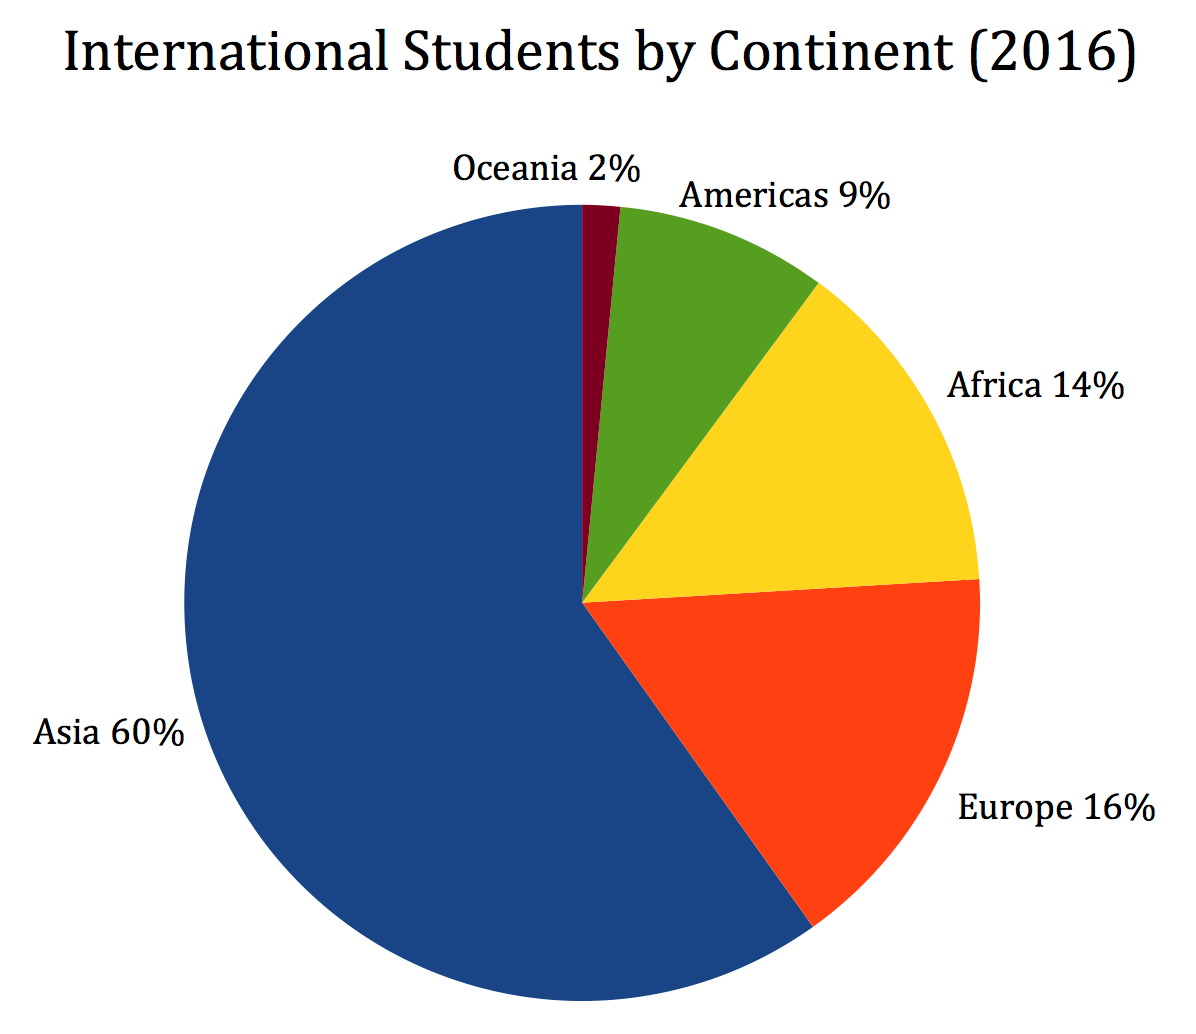 INTERNATIONAL STUDENTS IN CHINA: Who Will Reach This Vast